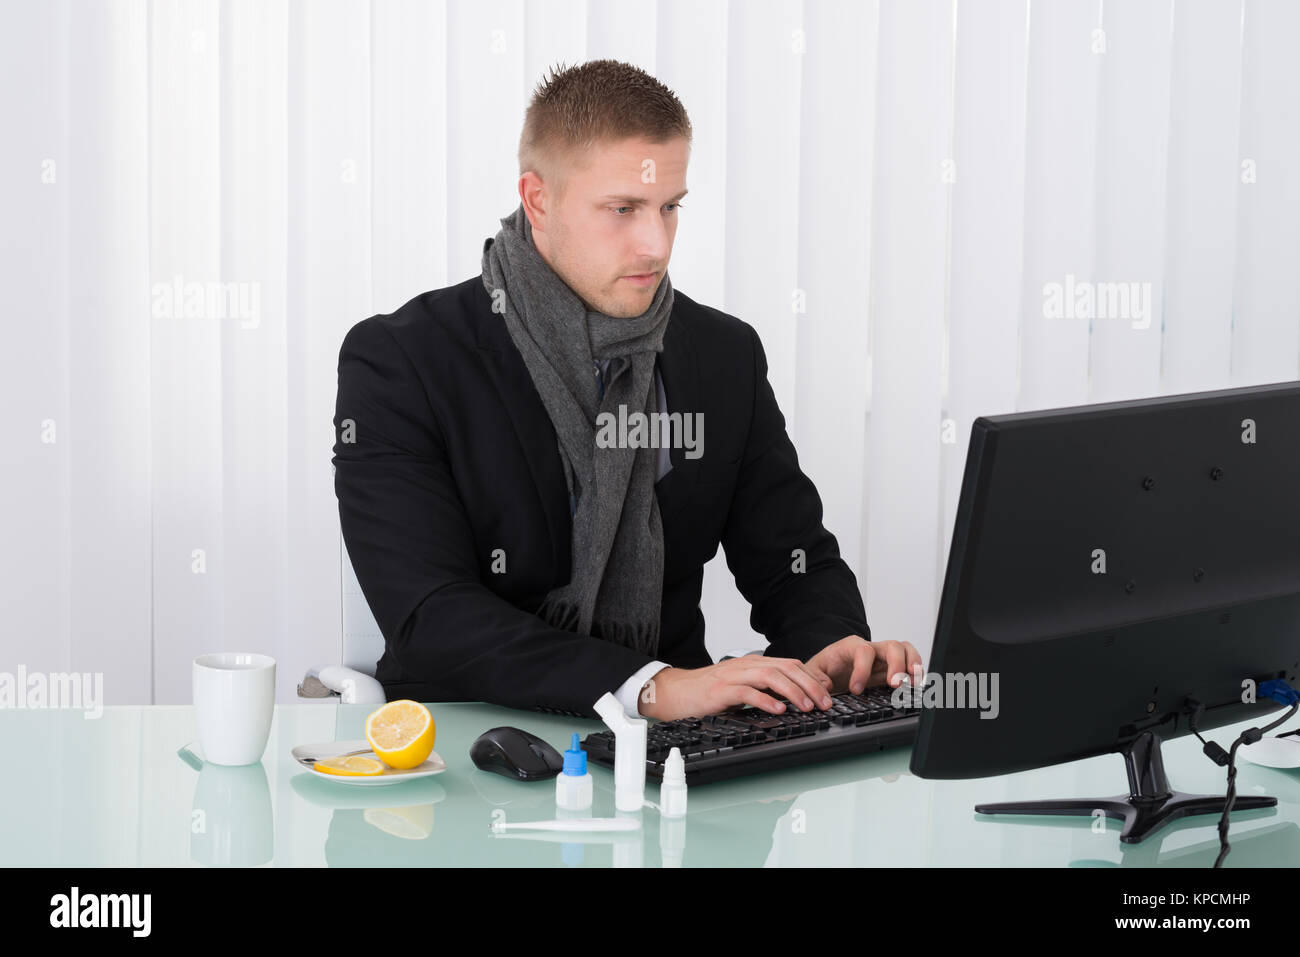 Sick Businessman Using Computer In Office - Stock Image